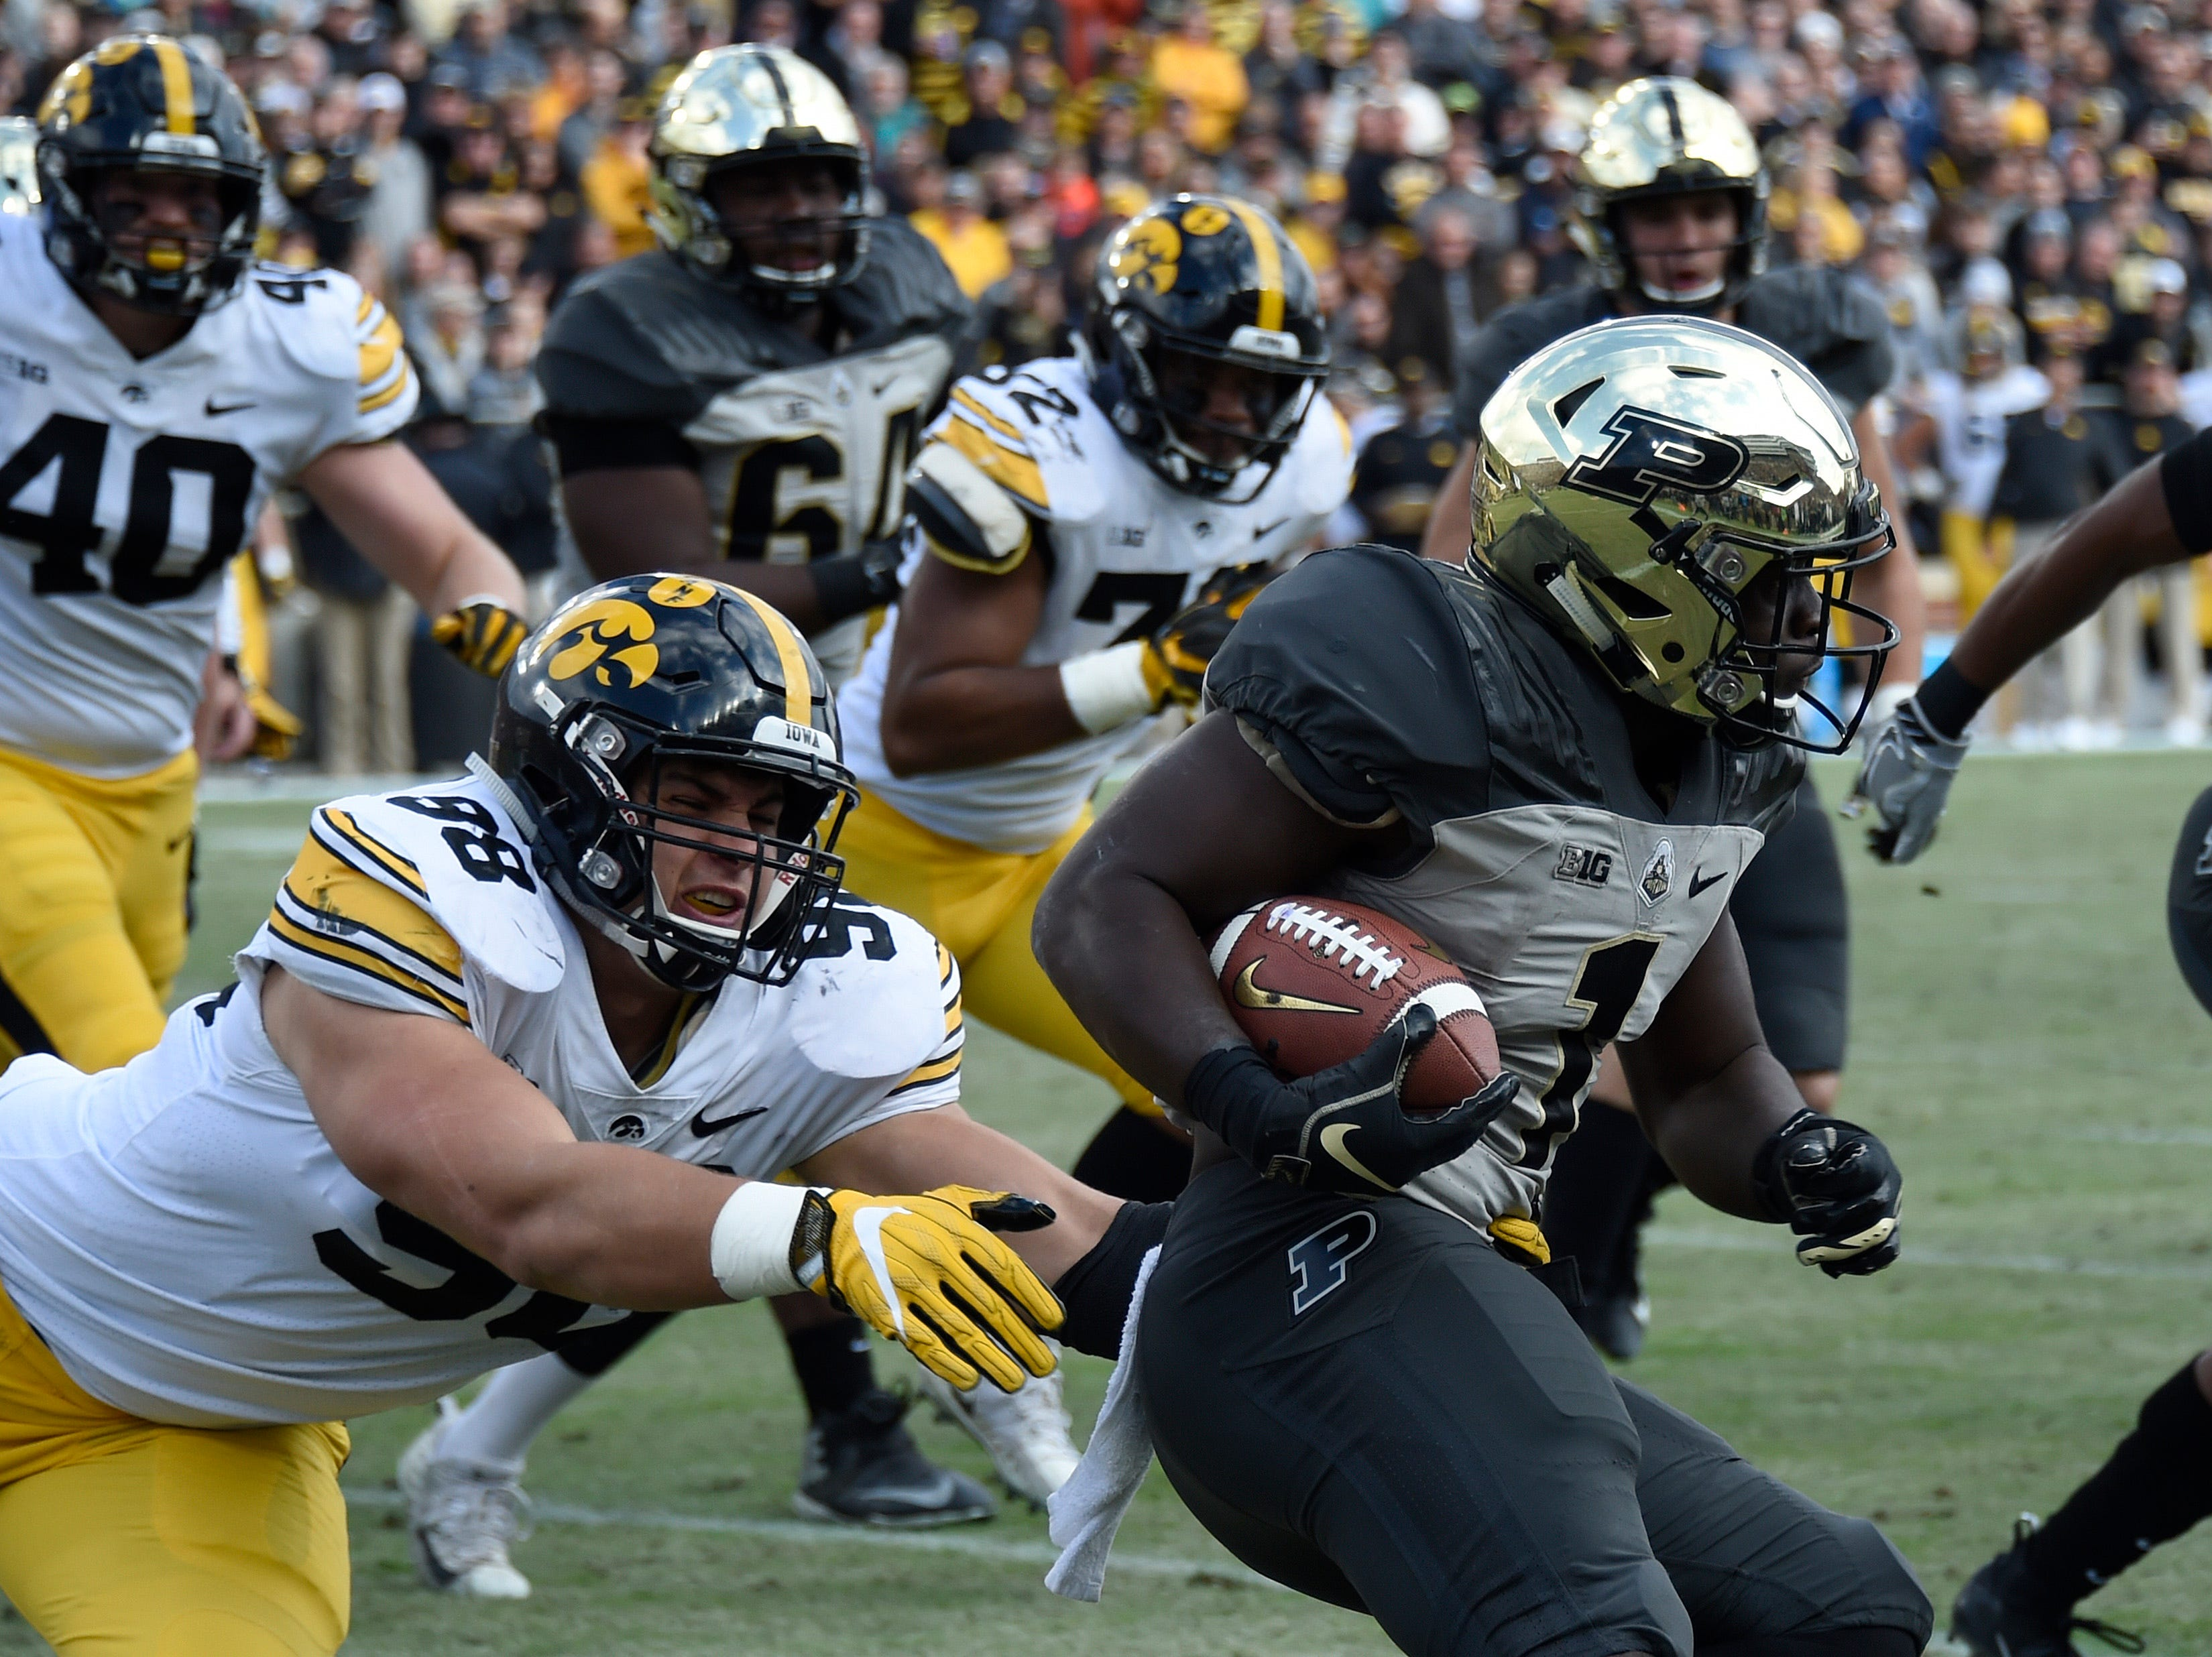 Nov 3, 2018; West Lafayette, IN, USA;  Iowa Hawkeyes defensive end Anthony Nelson (98) attempts a tackle on Purdue Boilermakers running back D.J. Knox (1) at Ross-Ade Stadium.